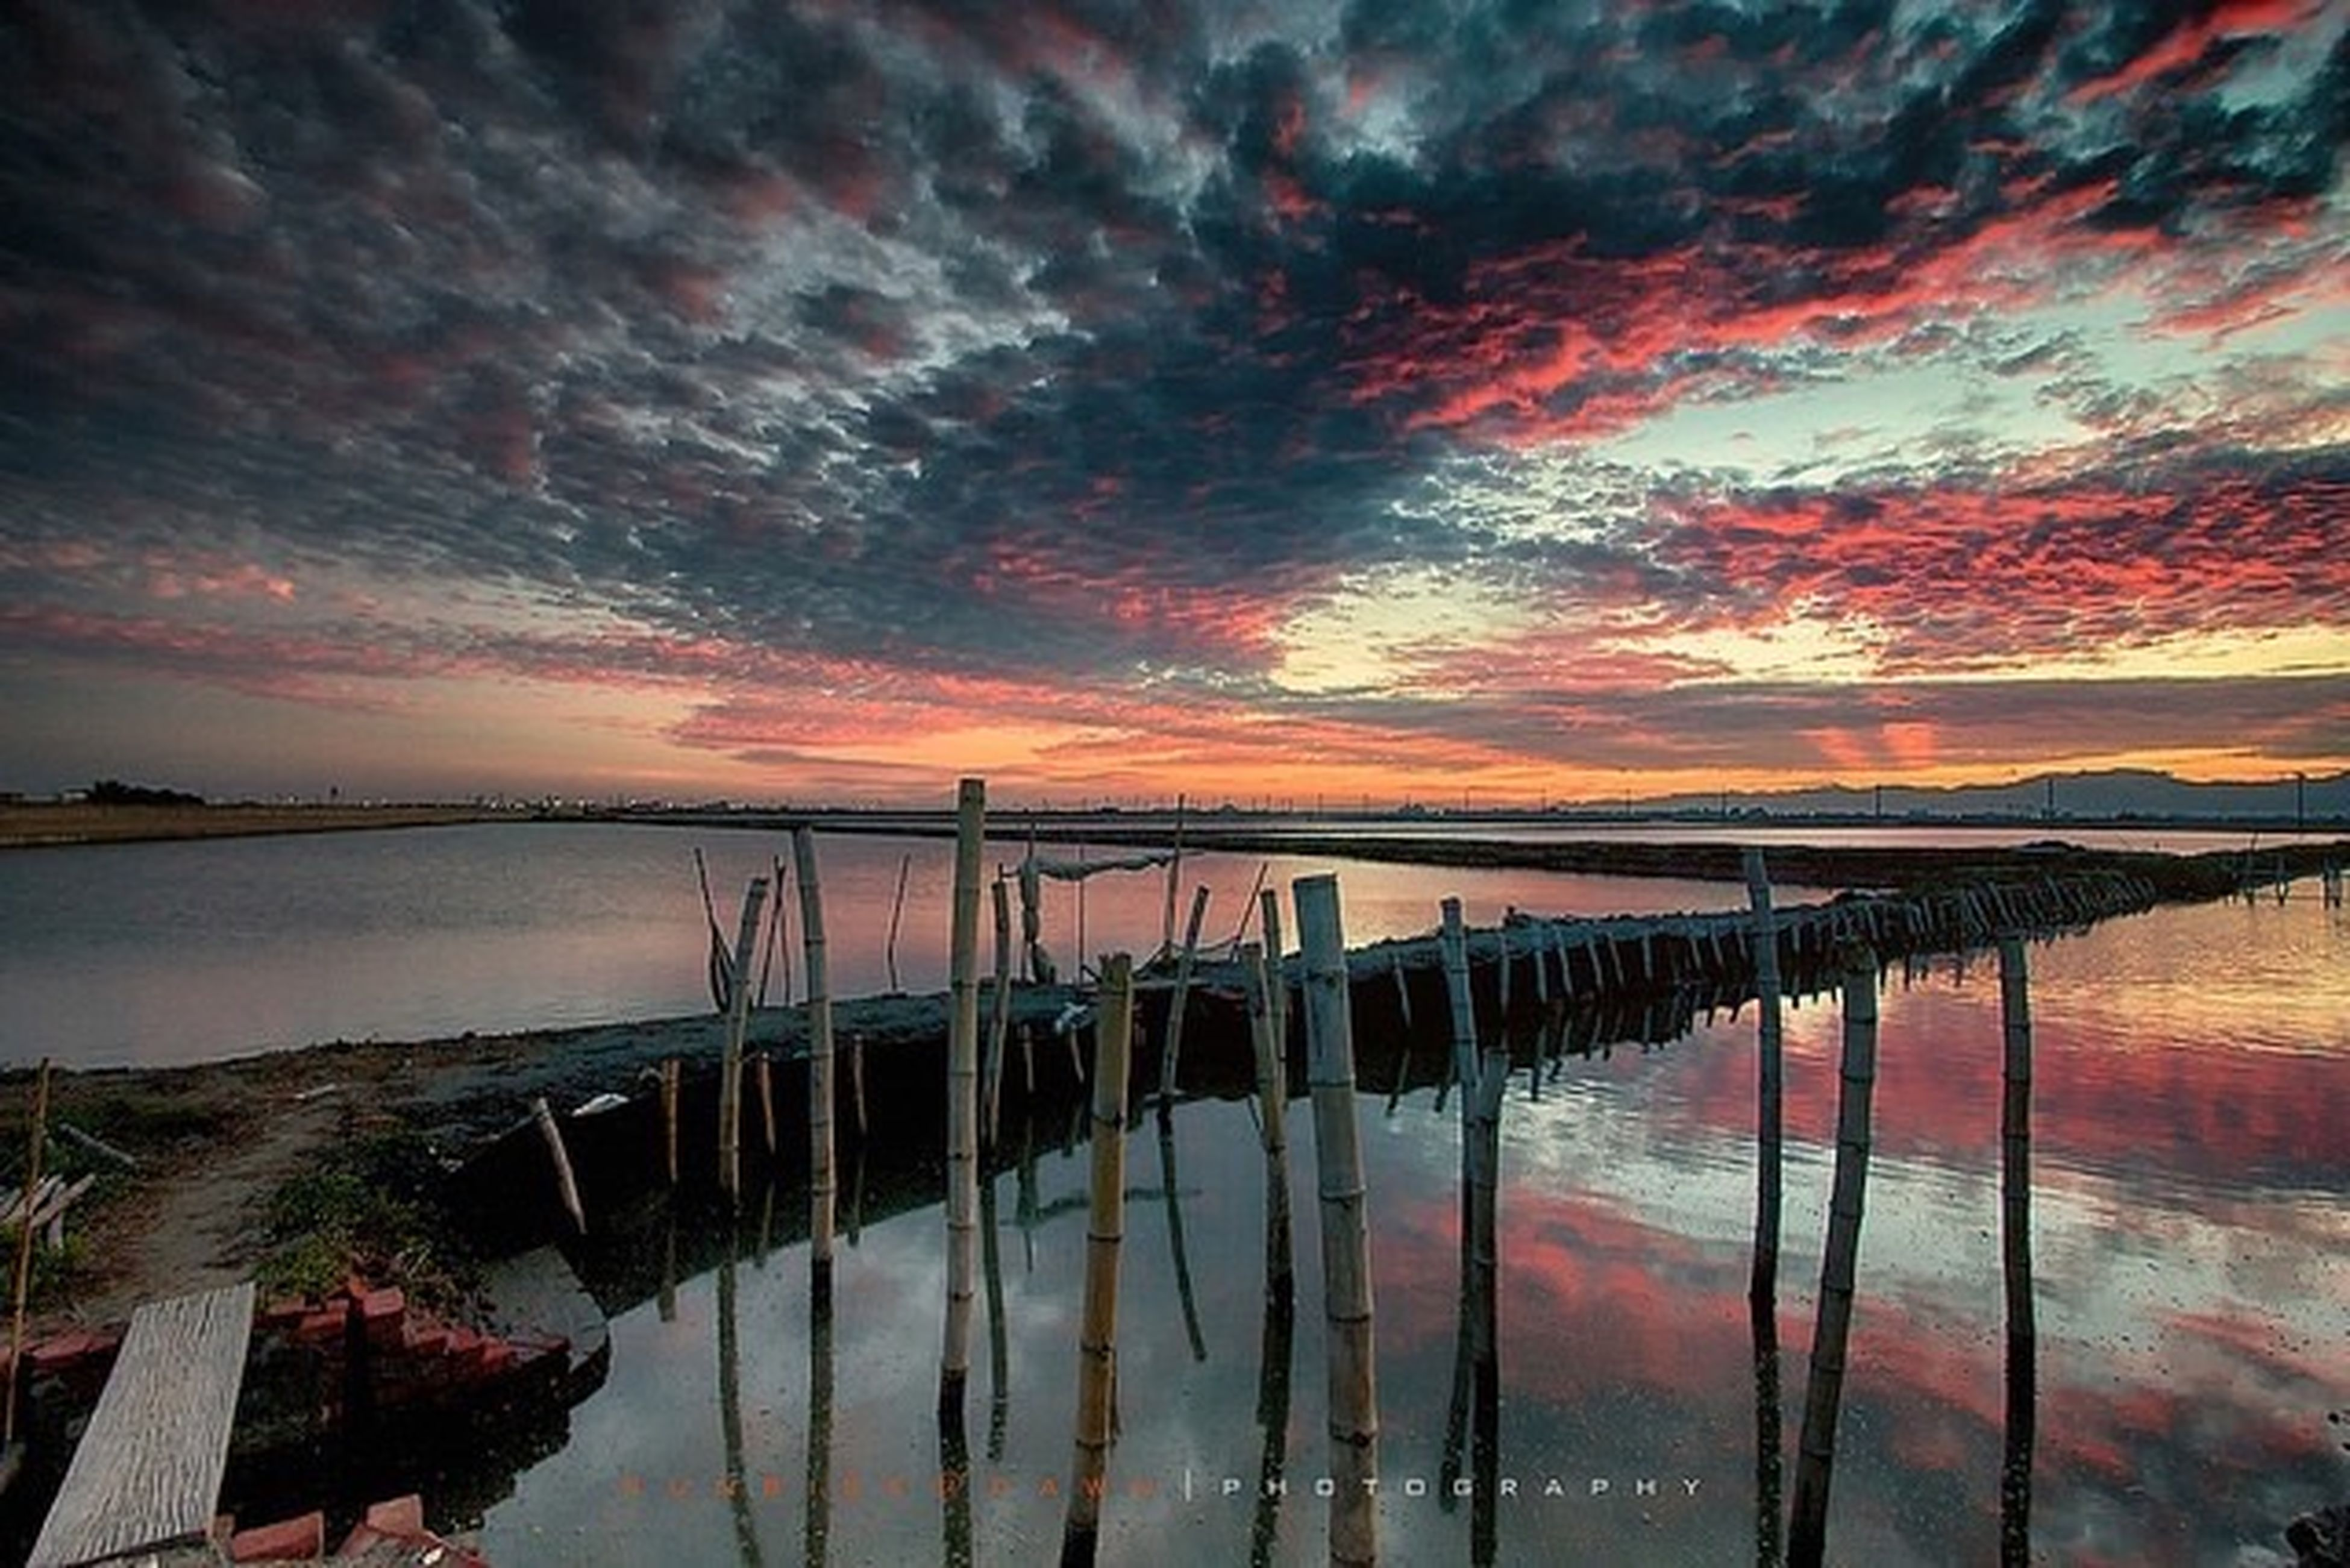 water, sunset, sky, cloud - sky, reflection, scenics, tranquility, tranquil scene, beauty in nature, lake, nature, cloudy, orange color, pier, sea, idyllic, cloud, weather, dramatic sky, dusk